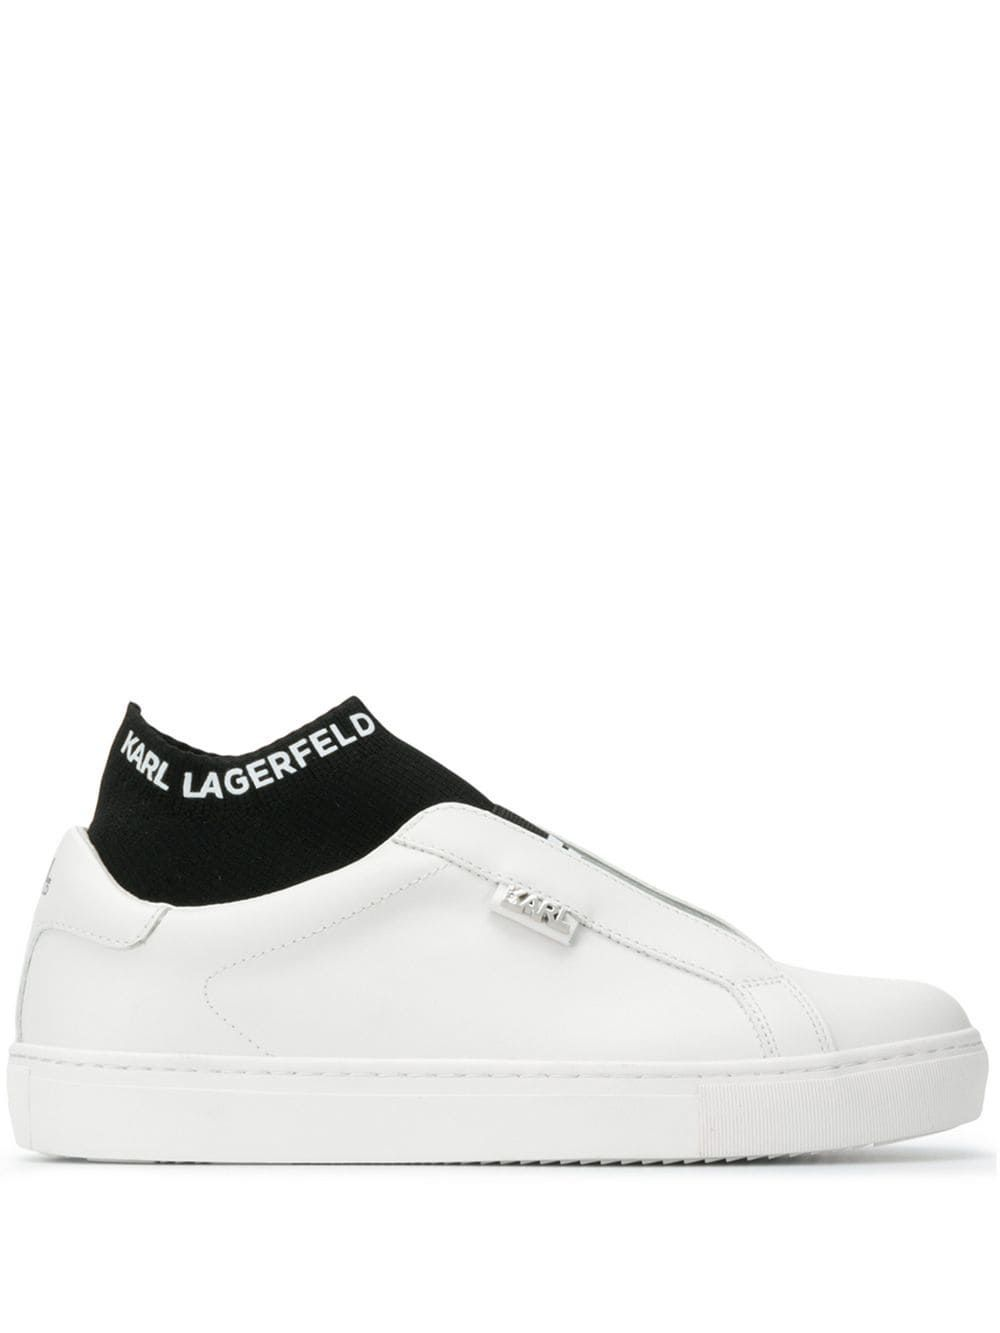 Karl Lagerfeld Layered Sock Sneakers In White Modesens Karl Lagerfeld Socks Sneakers Karl Lagerfeld Fashion